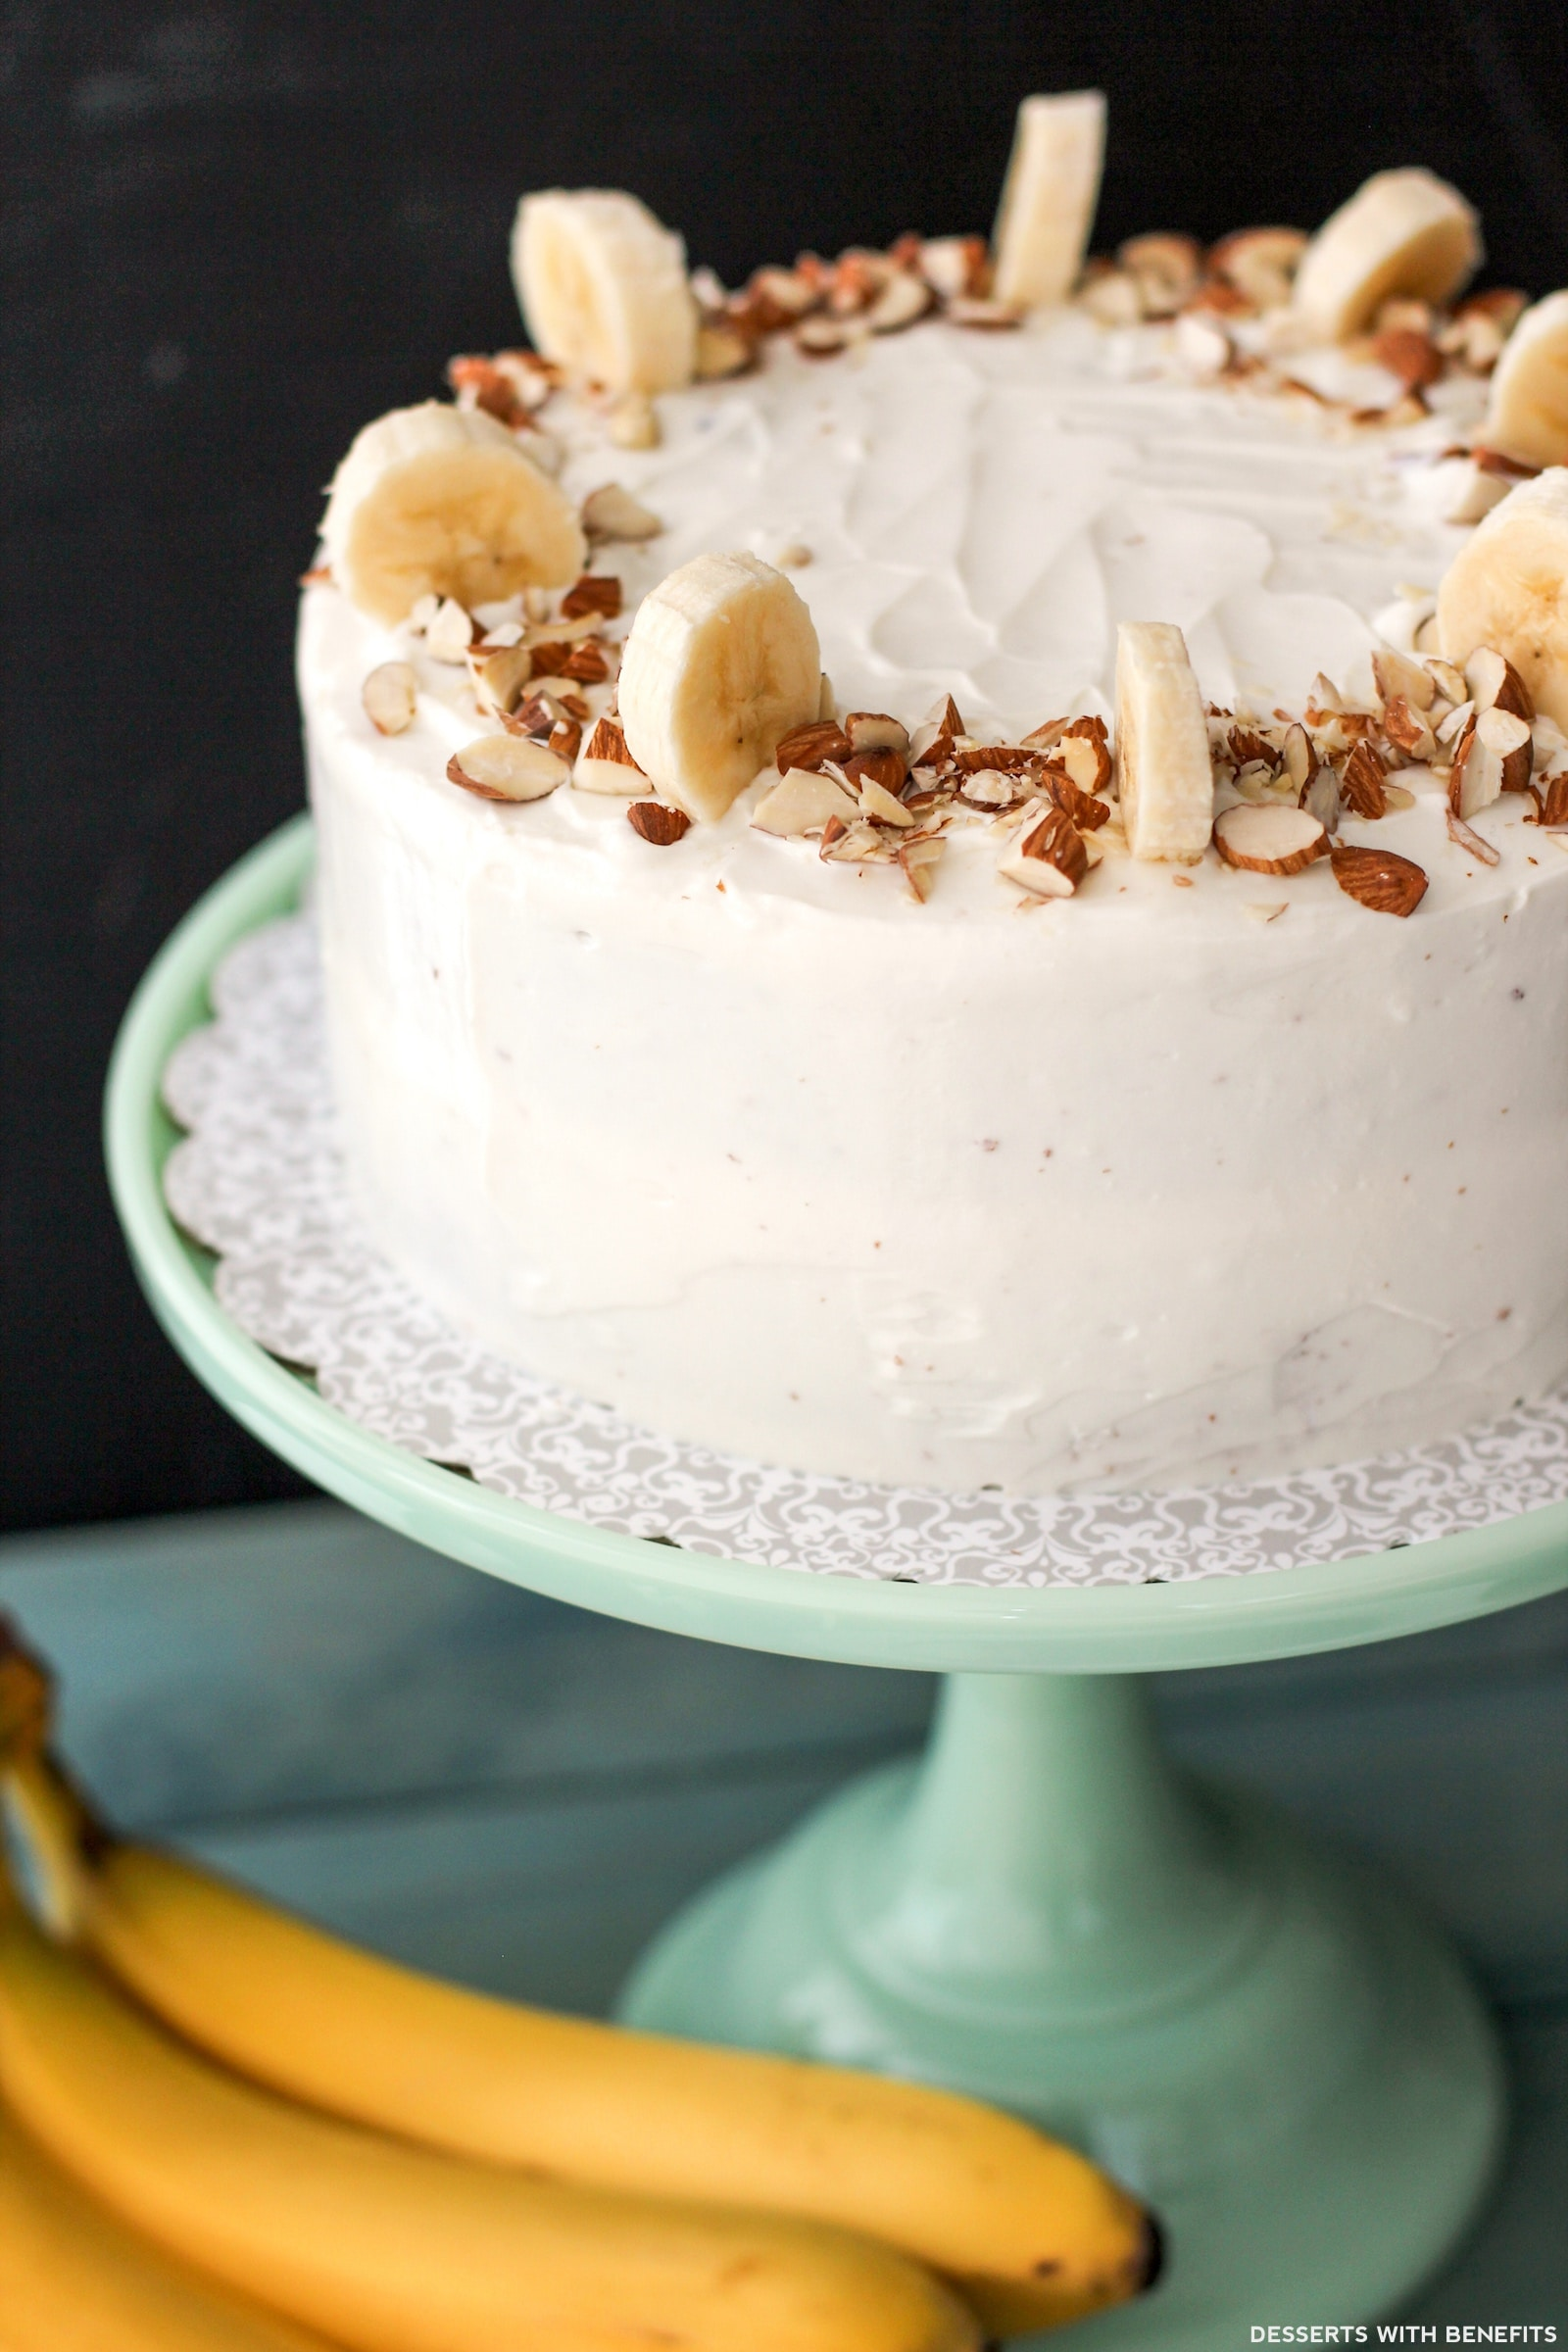 Healthy Banana Cake With Cream Cheese Frosting Refined Sugar Free High Protein